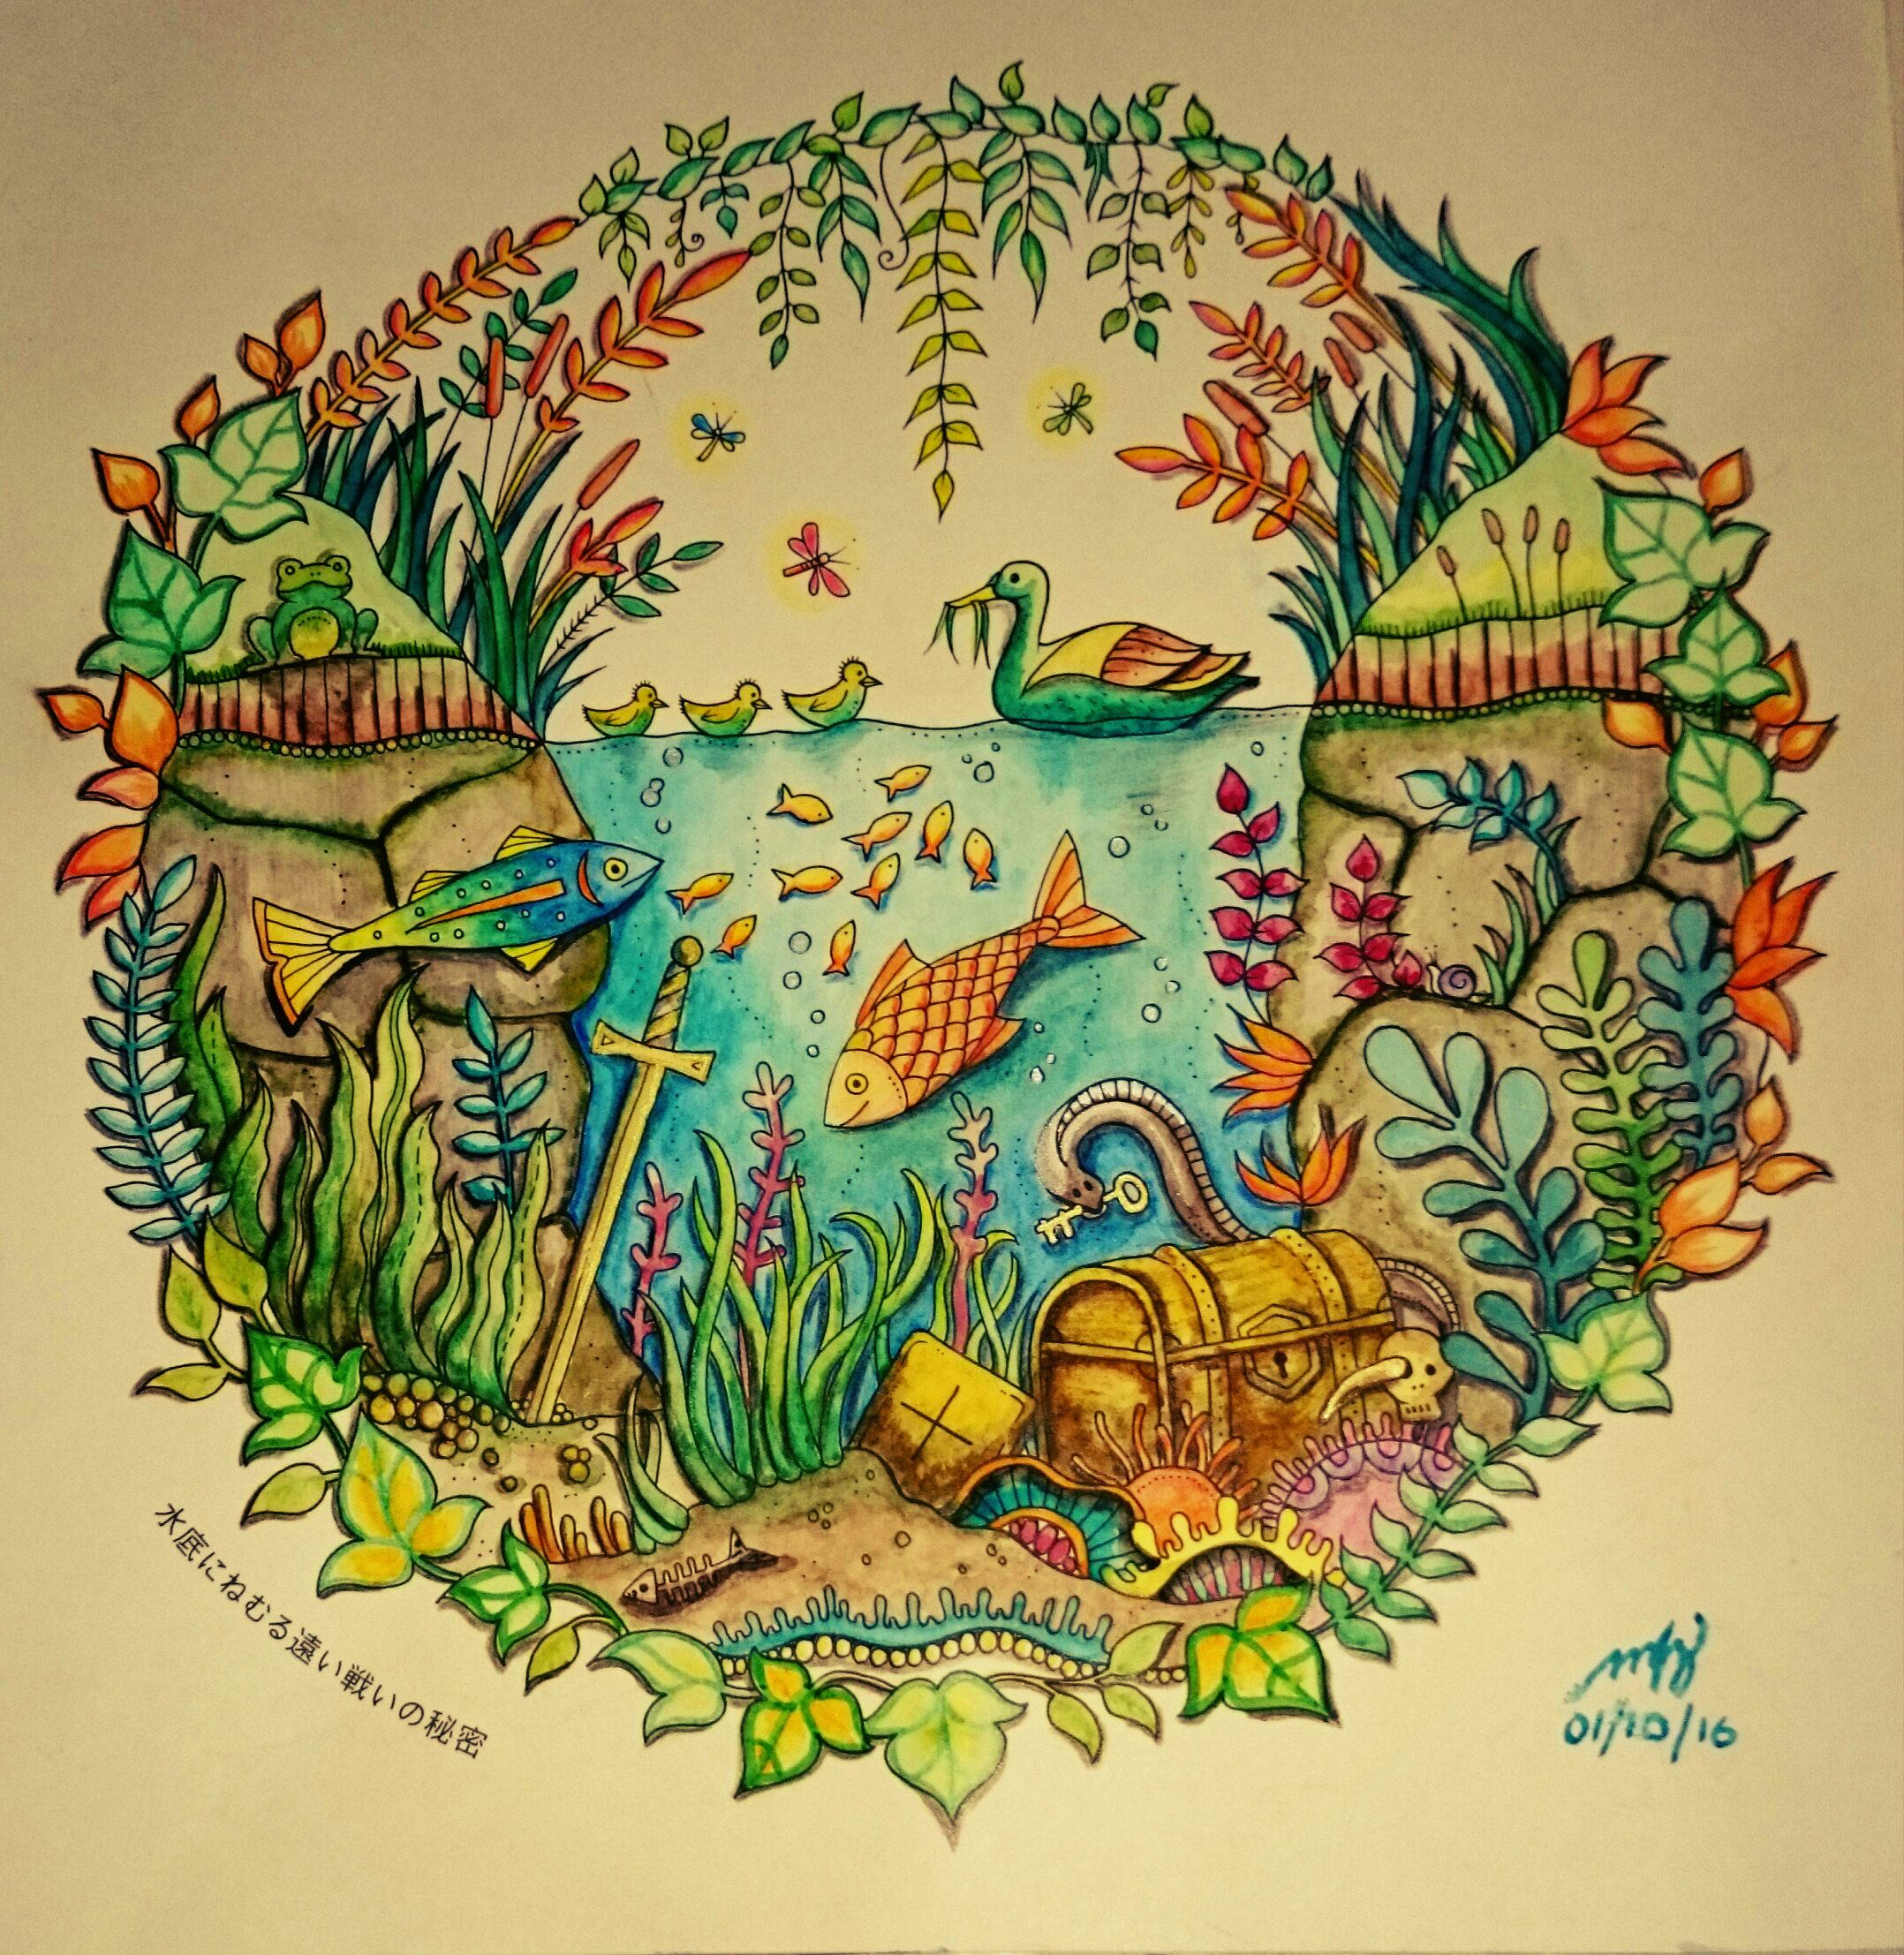 Zendoodle coloring enchanting gardens - Enchanted Forest Aquarium Colored By Yours Truly Haha I Hope You Like It